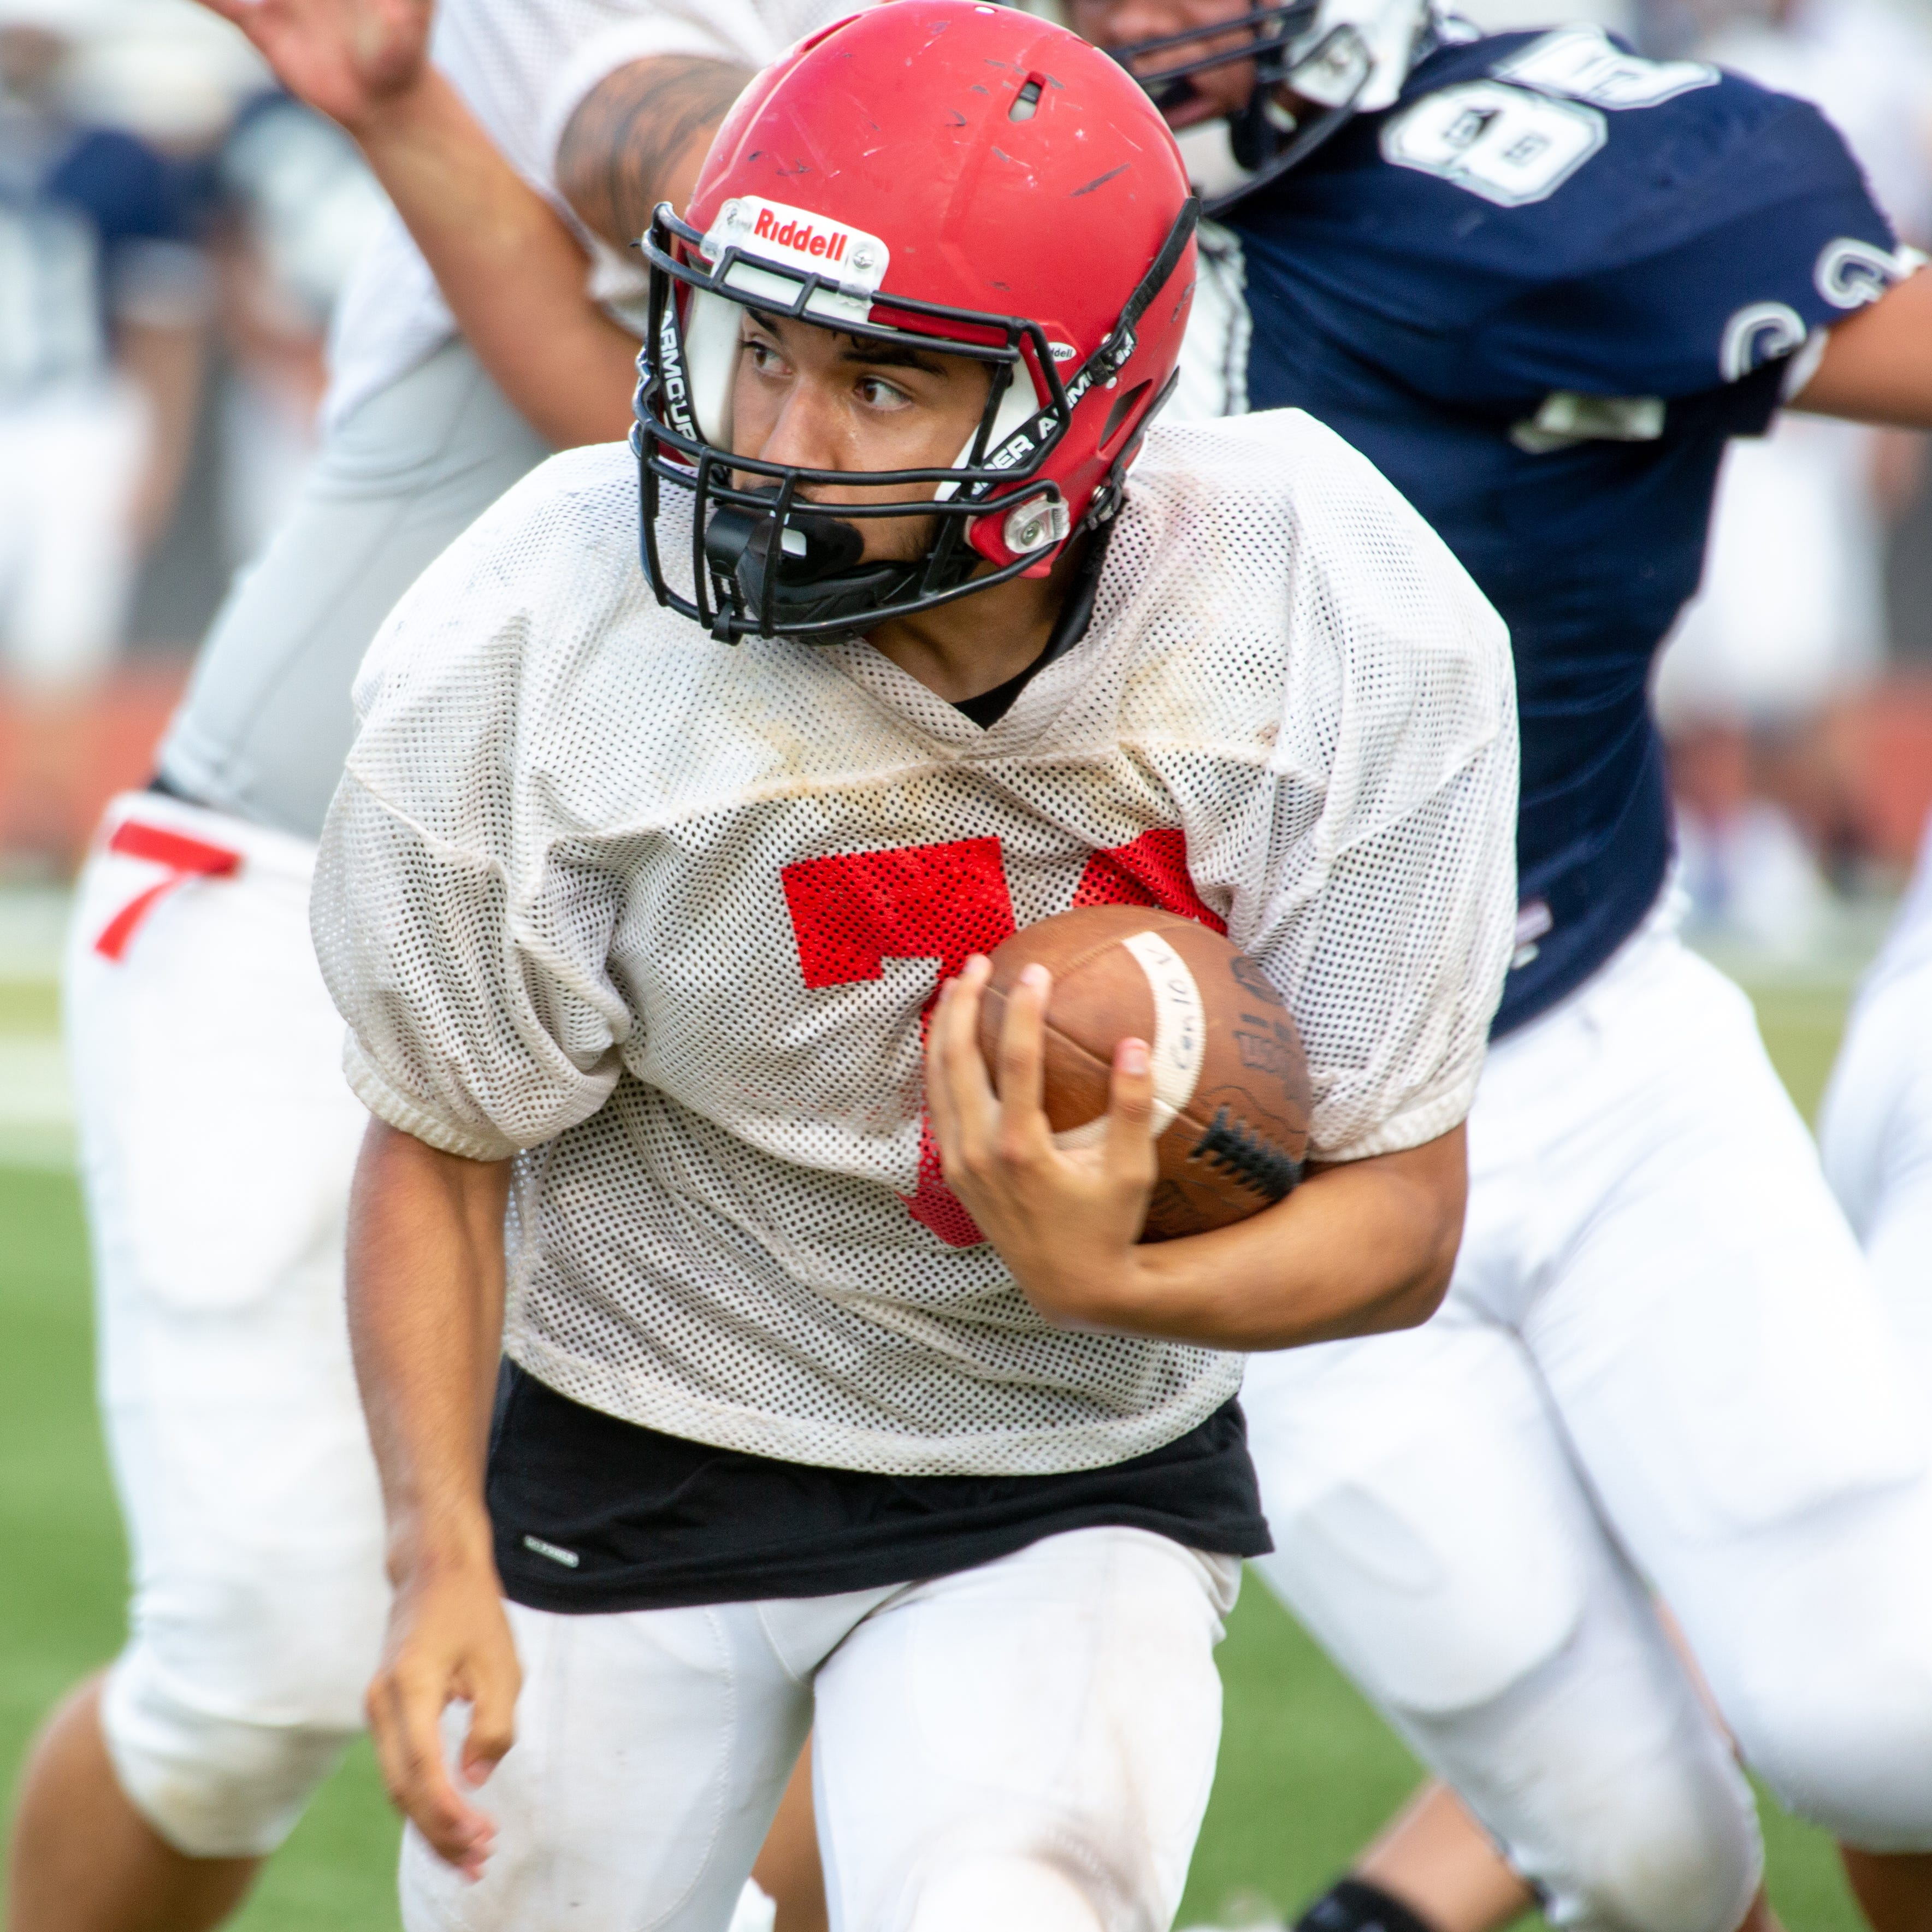 Centennial football looks to improve in 2018